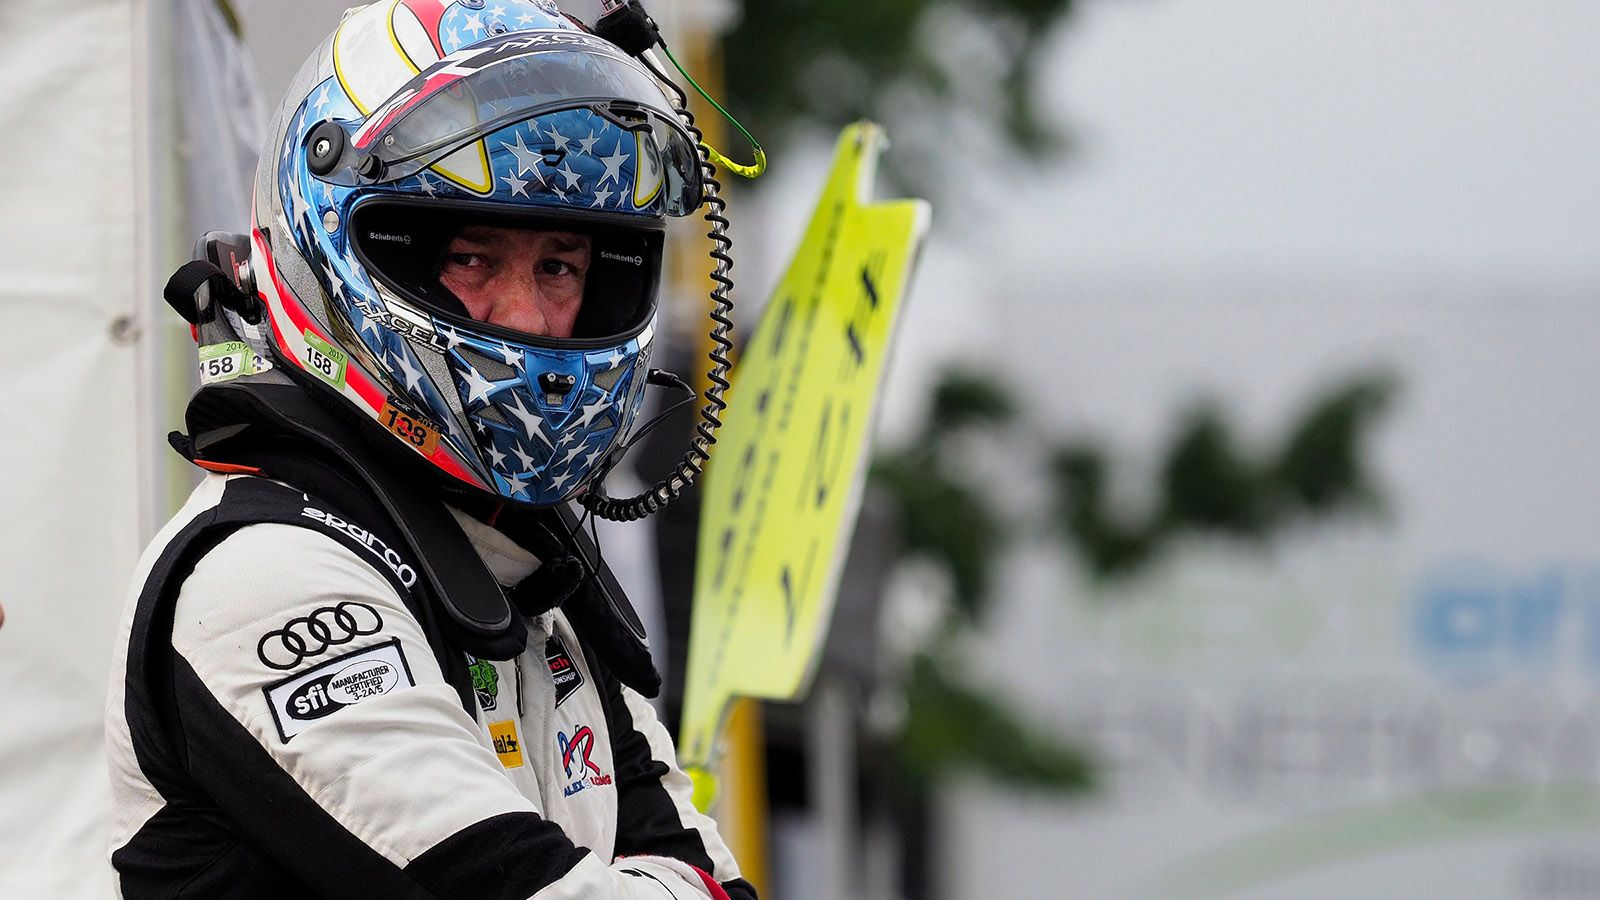 townsend bell hopes to steal another rolex 24 win townsend bell hopes to steal another